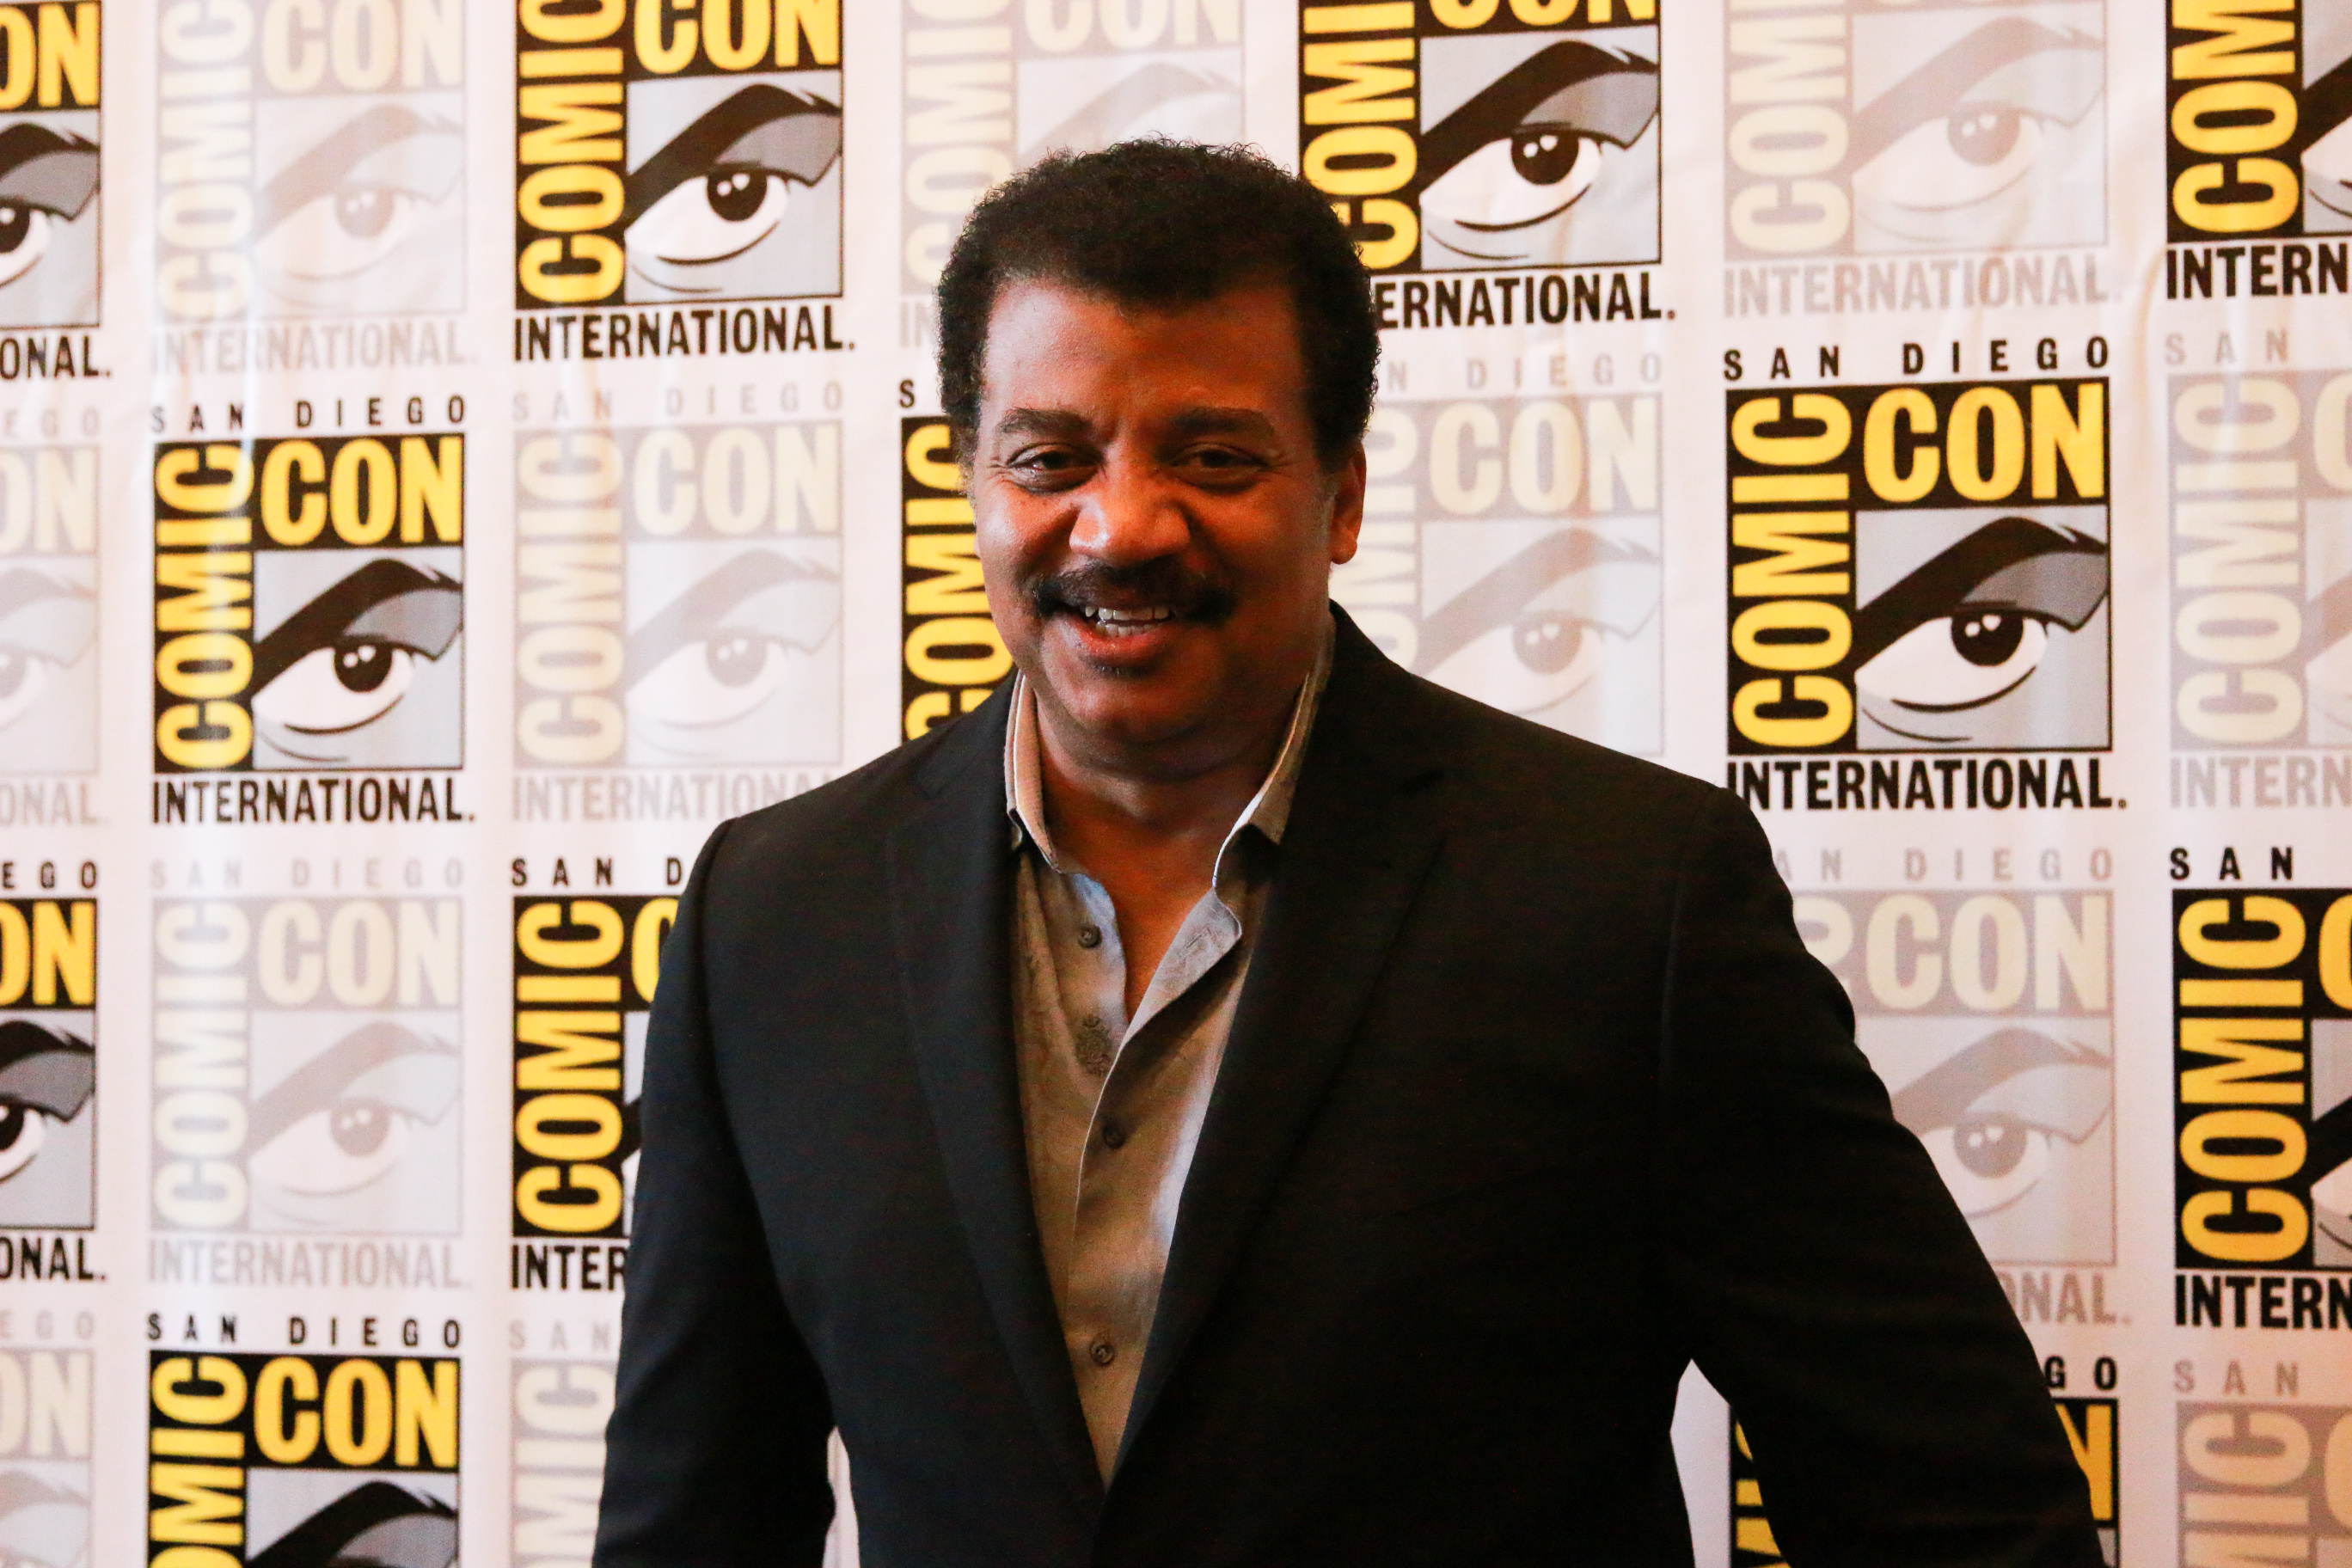 Neil deGrasse Tyson at San Diego Comic Con 2018 | pc: Alyssa Rasmus/Pink Camera Media